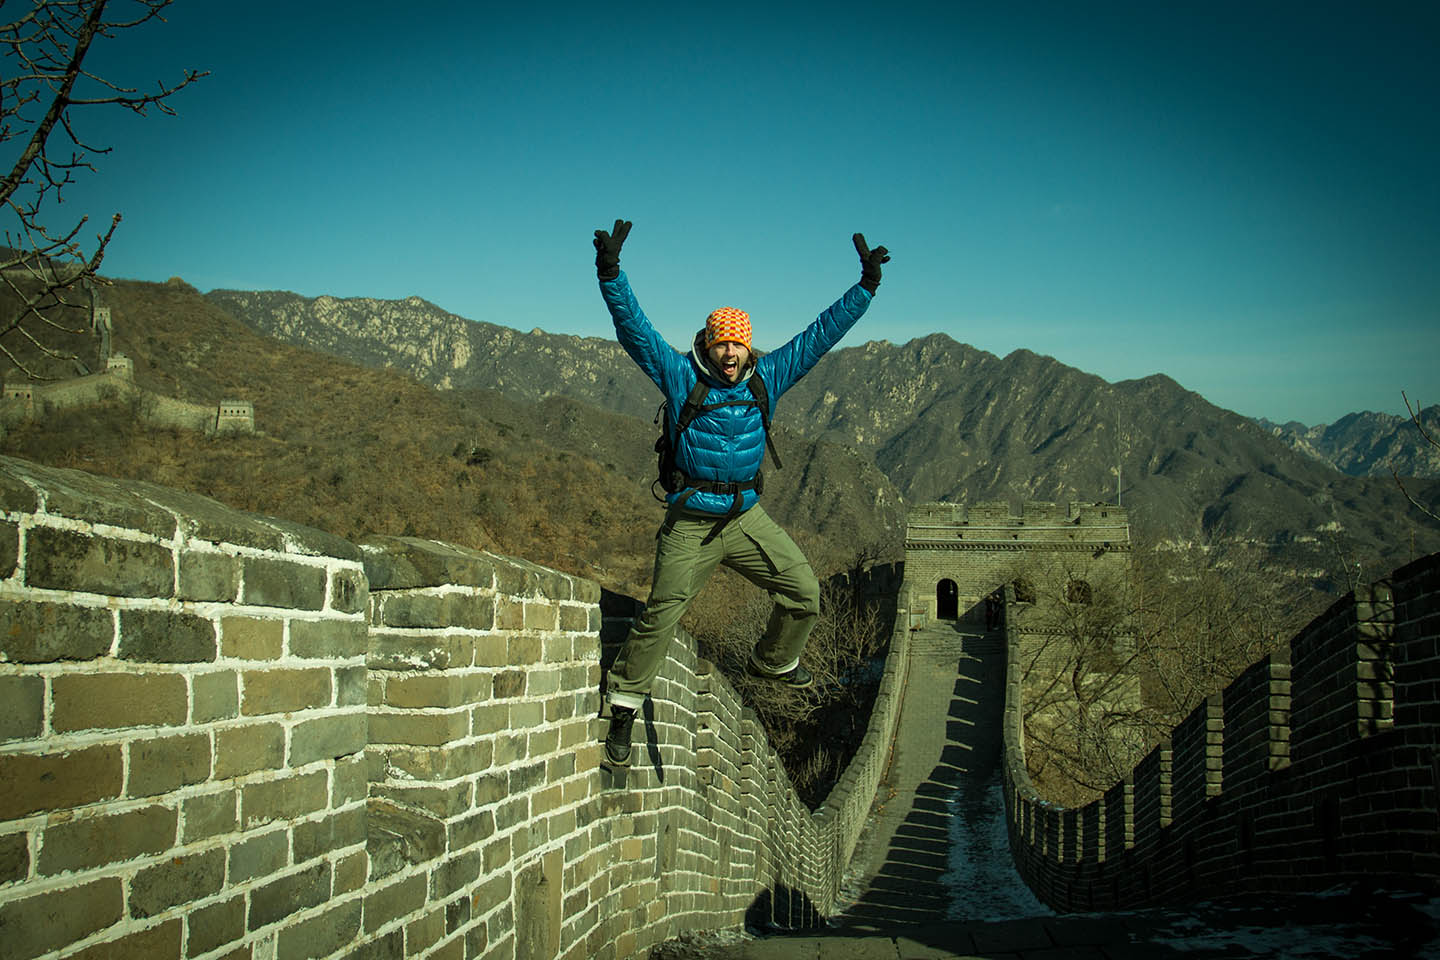 The Great Wall China / Chinesische Mauer / Nico Hopp